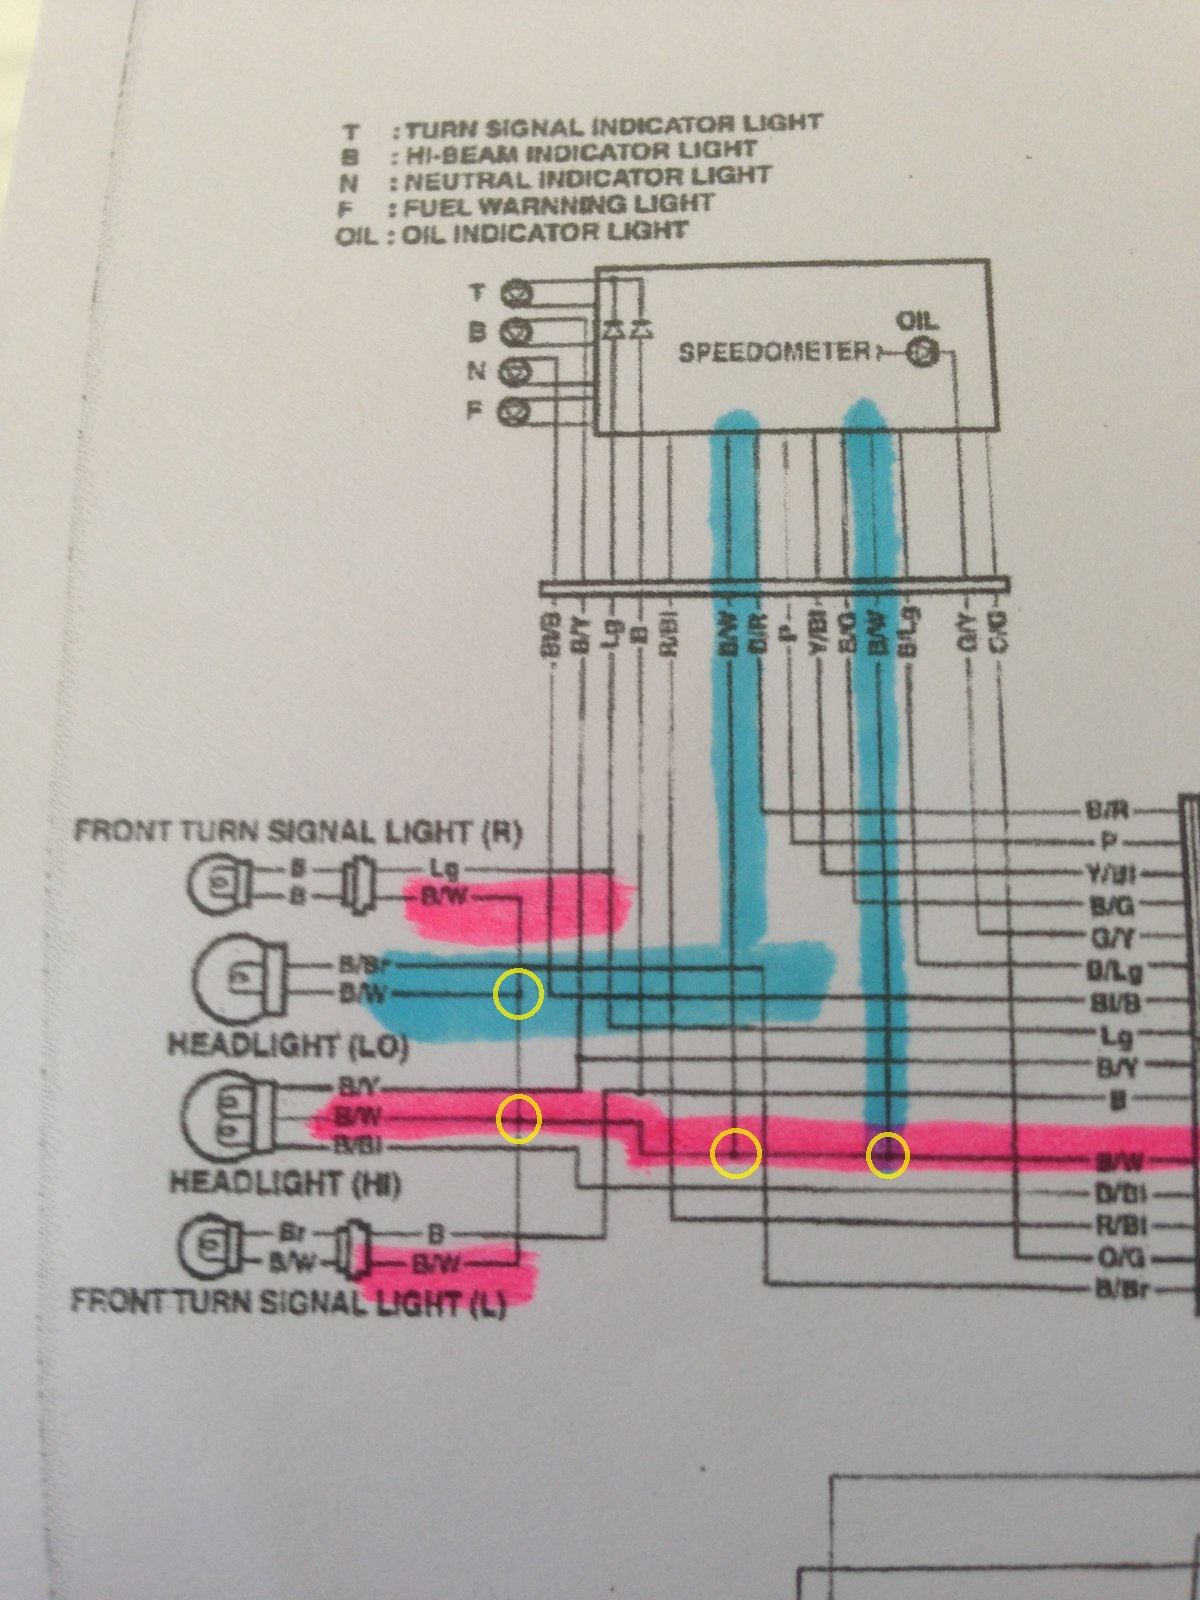 Illustration And Does Not Supercede The Wiring Diagram For Your Range